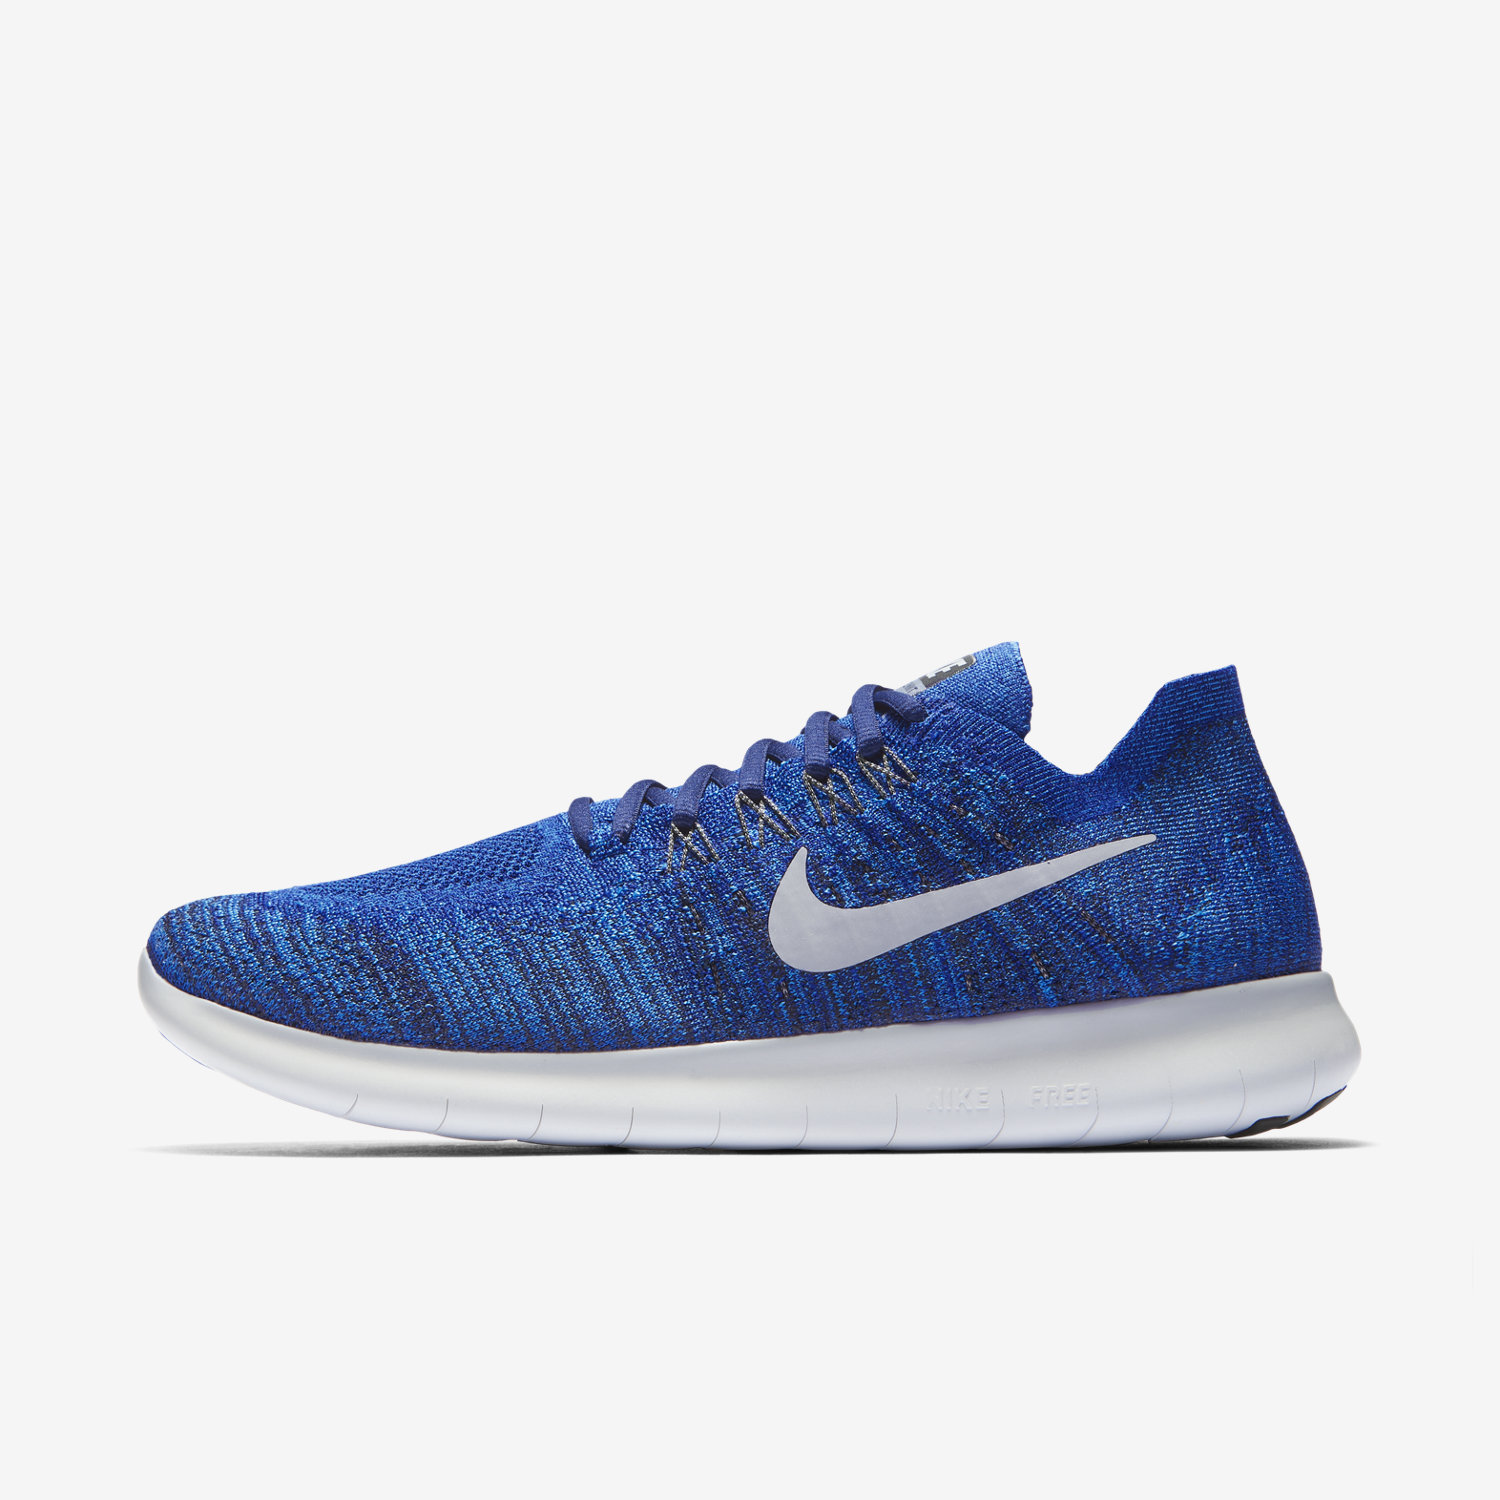 nike free run pink amazon. Nike Free Rn nike free run amazon Pink Low-top Sneakers. Eyes widening with surprise, he fell over backward. Beauvoir had whispered, glancing out the cracked and cobwebbed window, hoping not to see the shabby poacher returning with his kill.